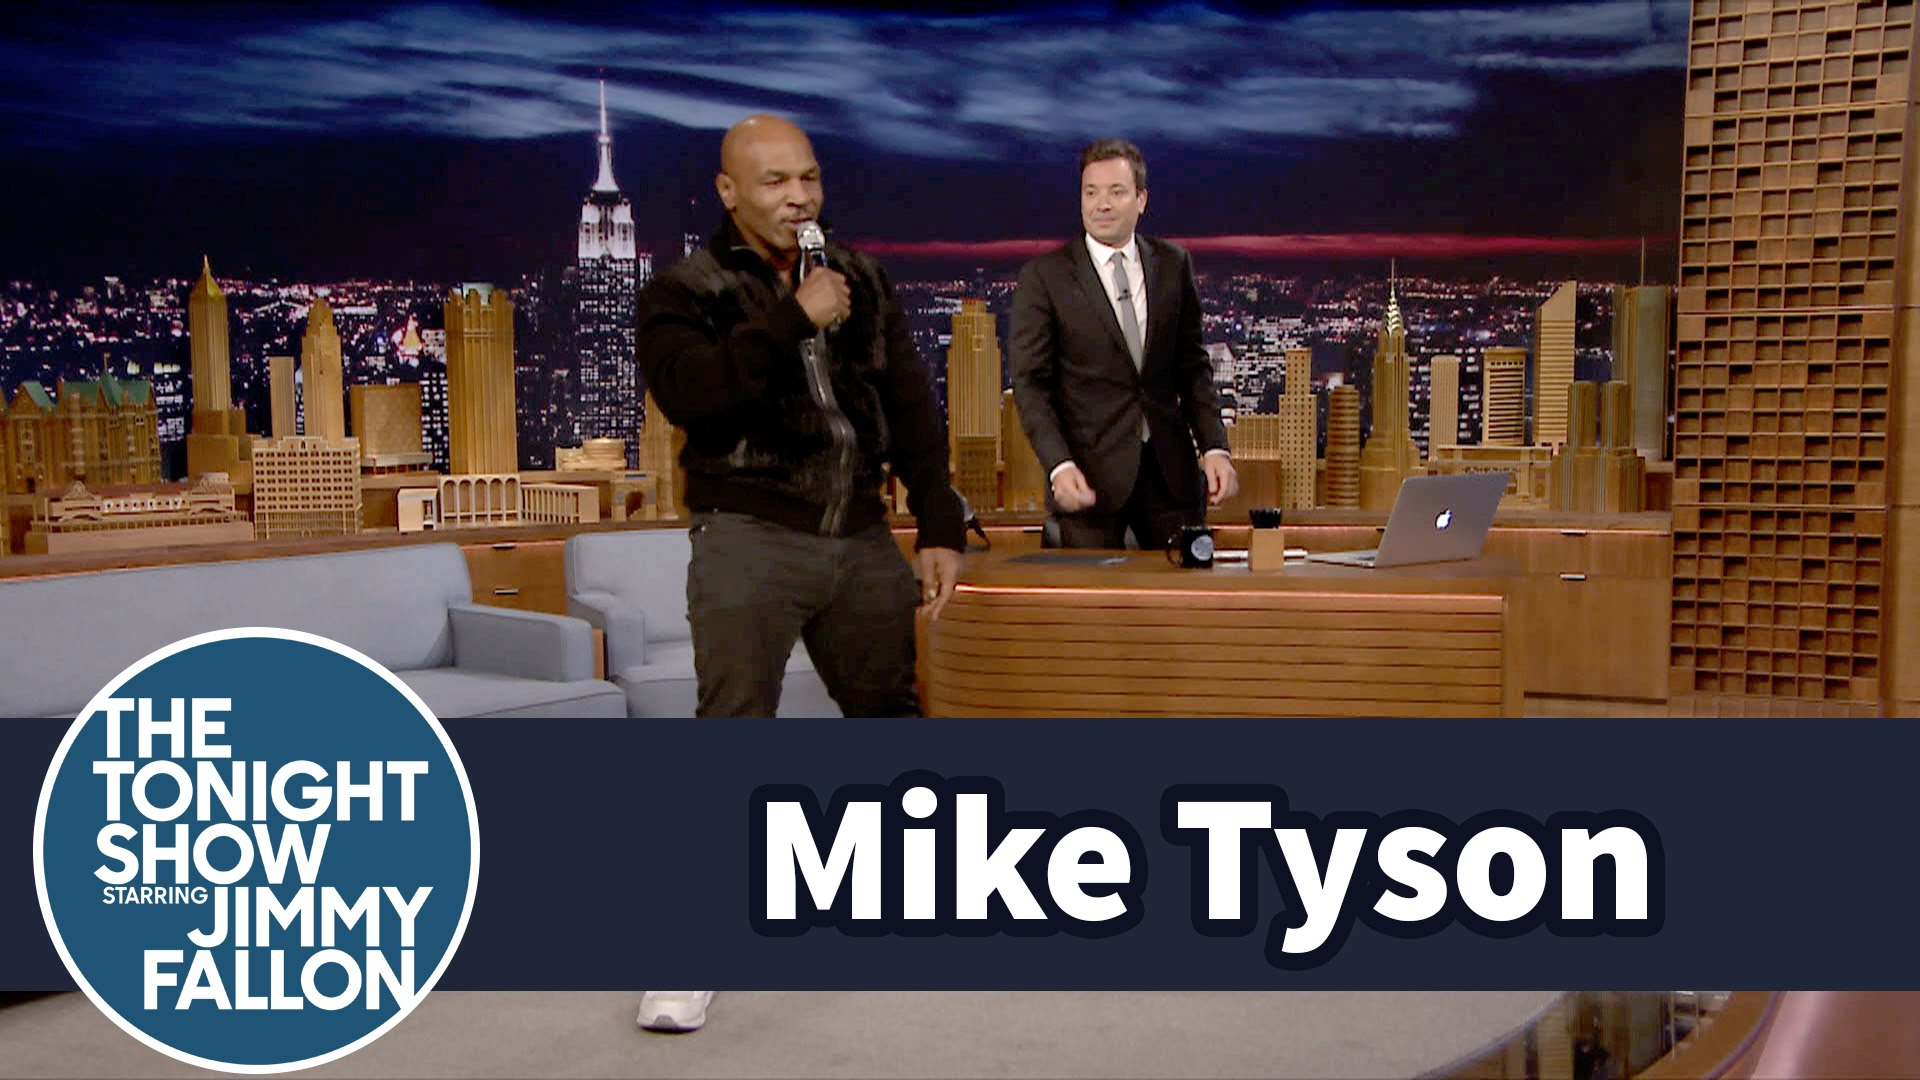 Mike Tyson sings & dances to